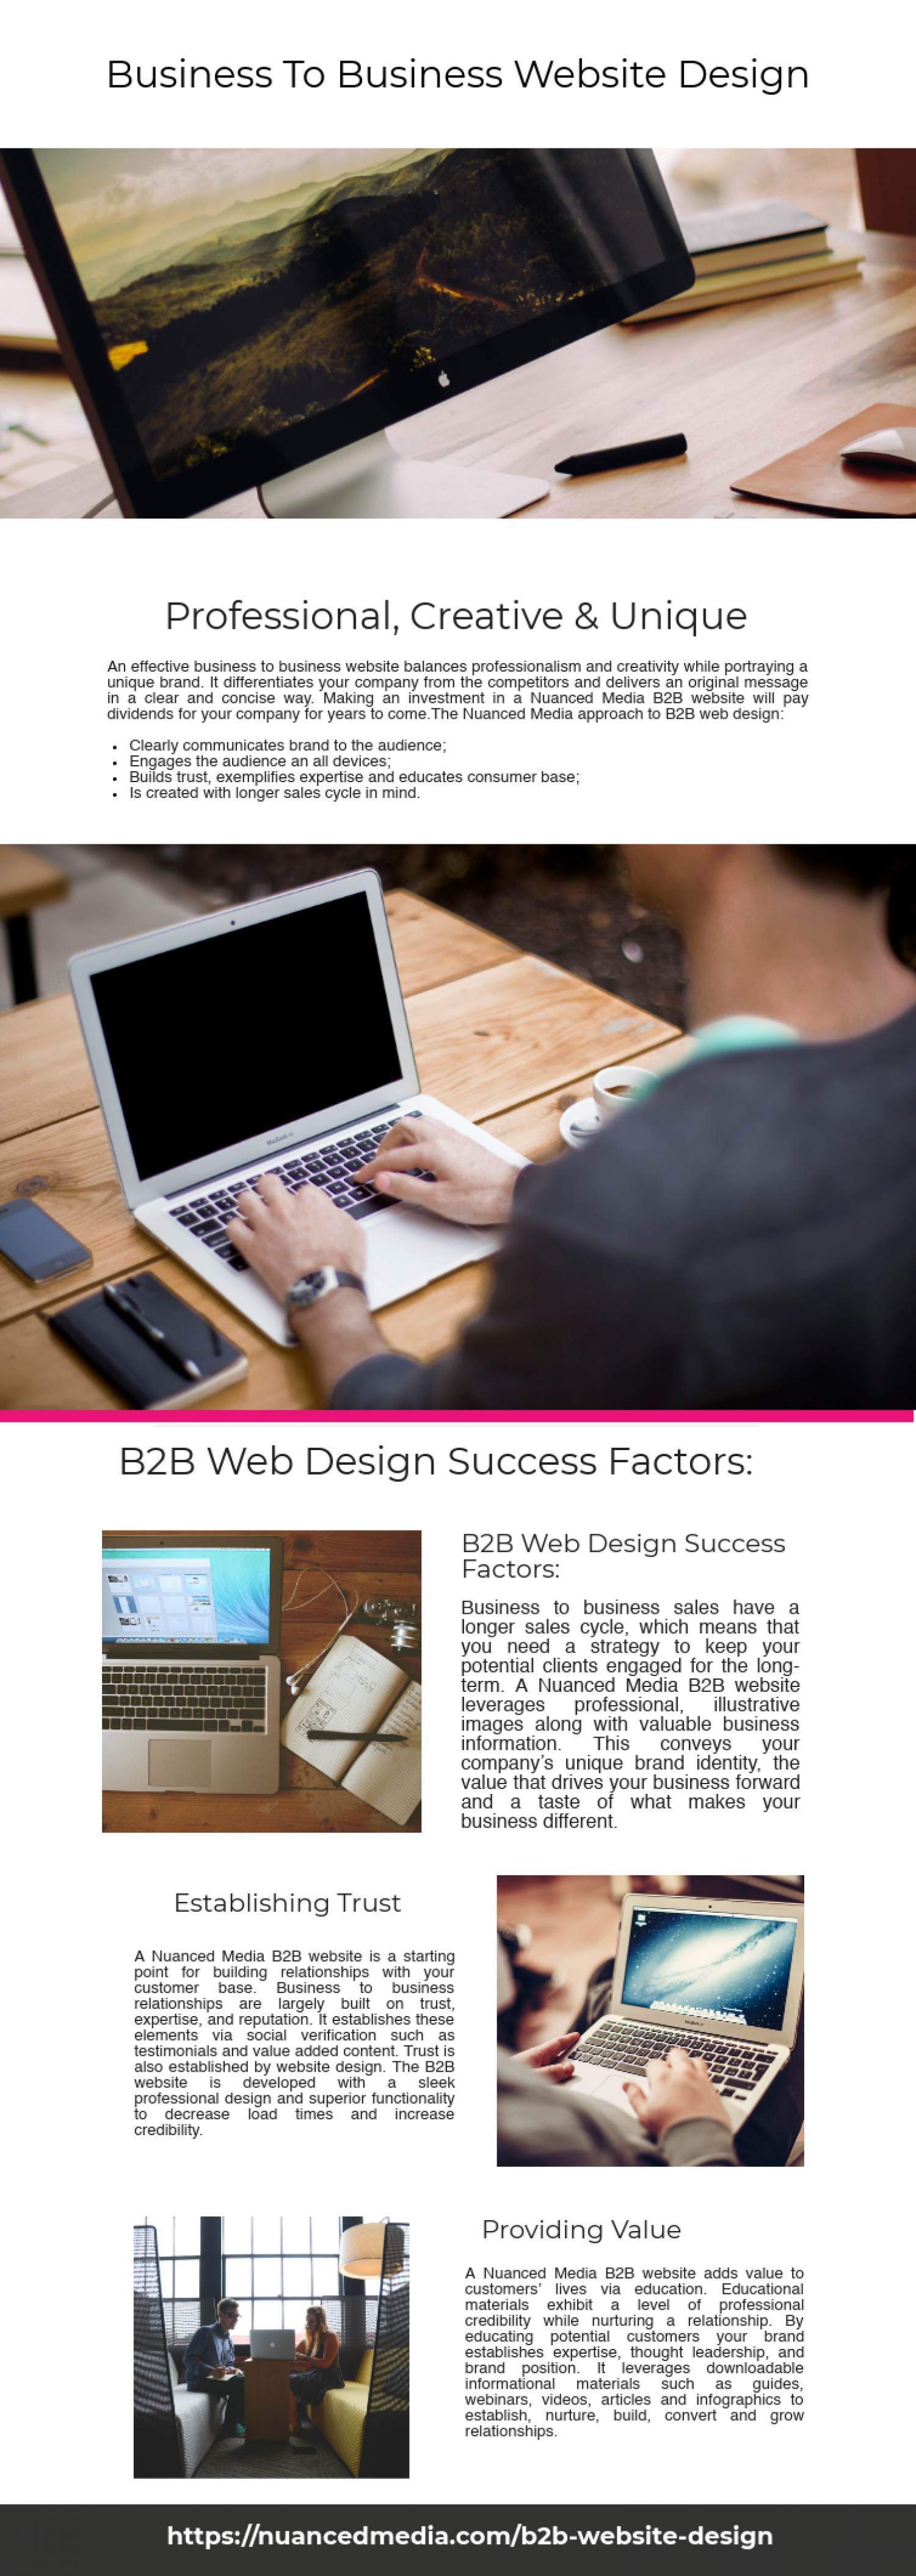 Business To Business Website Design Infographic